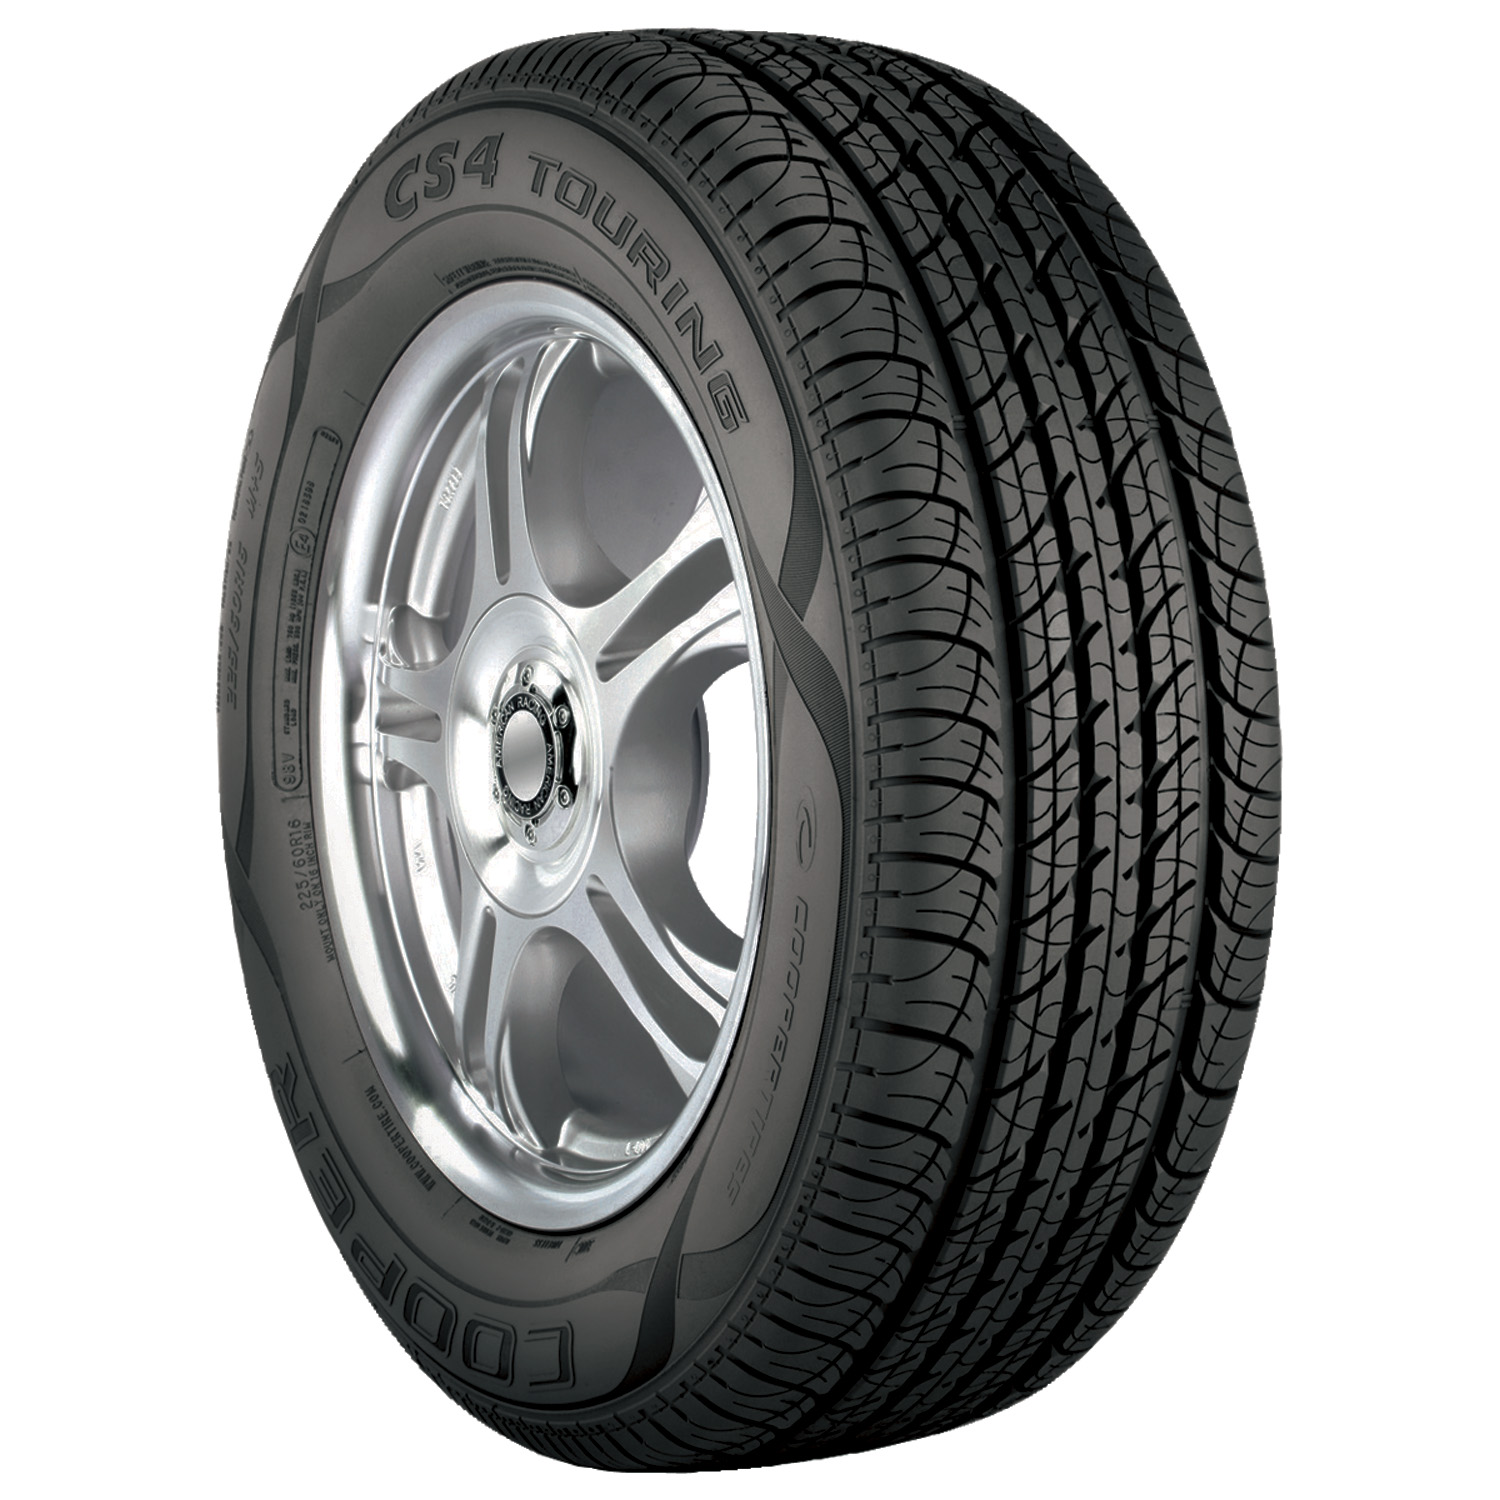 Cooper  CS4 Touring - 235/60R17 102T BW - All Season Tire